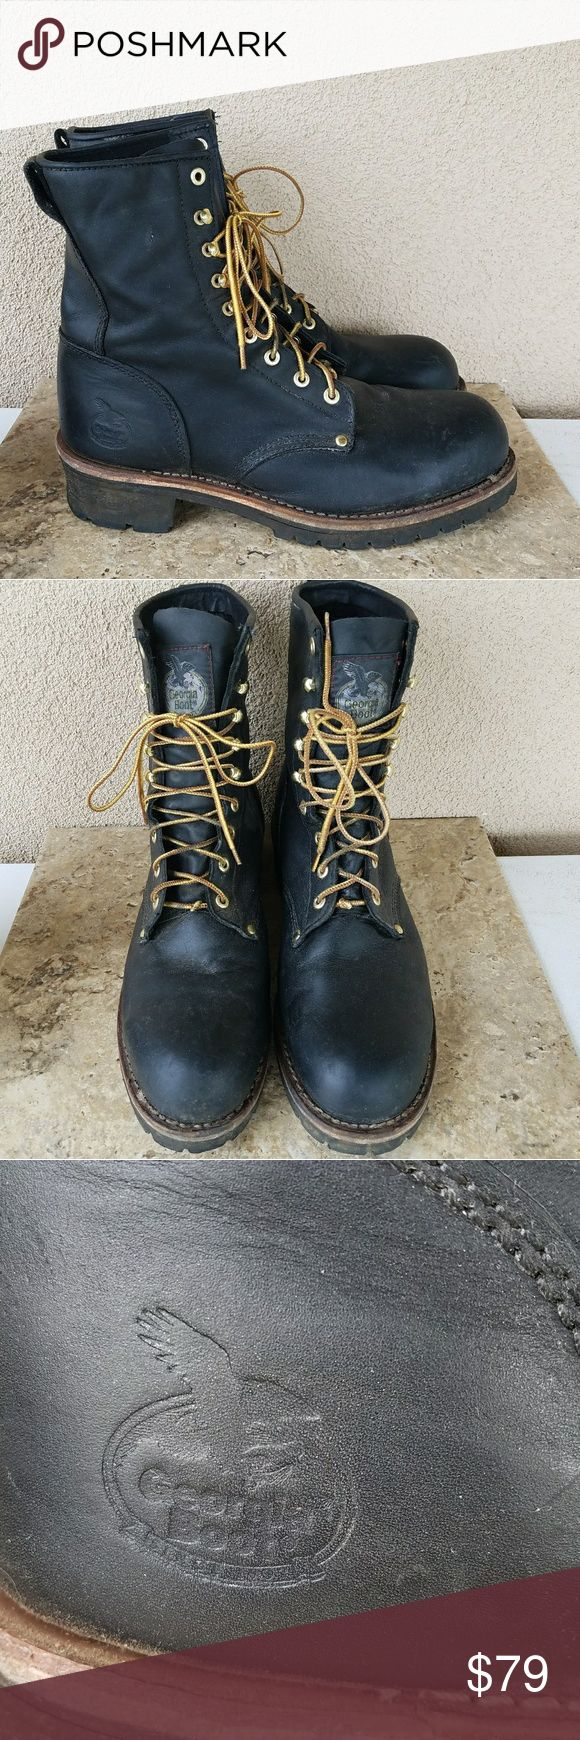 Georgia Boot Co. Logger Boots Sz 13 Georgia Boot Company black leather logger steel toe work boots. 8 inch height. Style number G8320. Excellent condition. Georgia Boot Shoes Boots